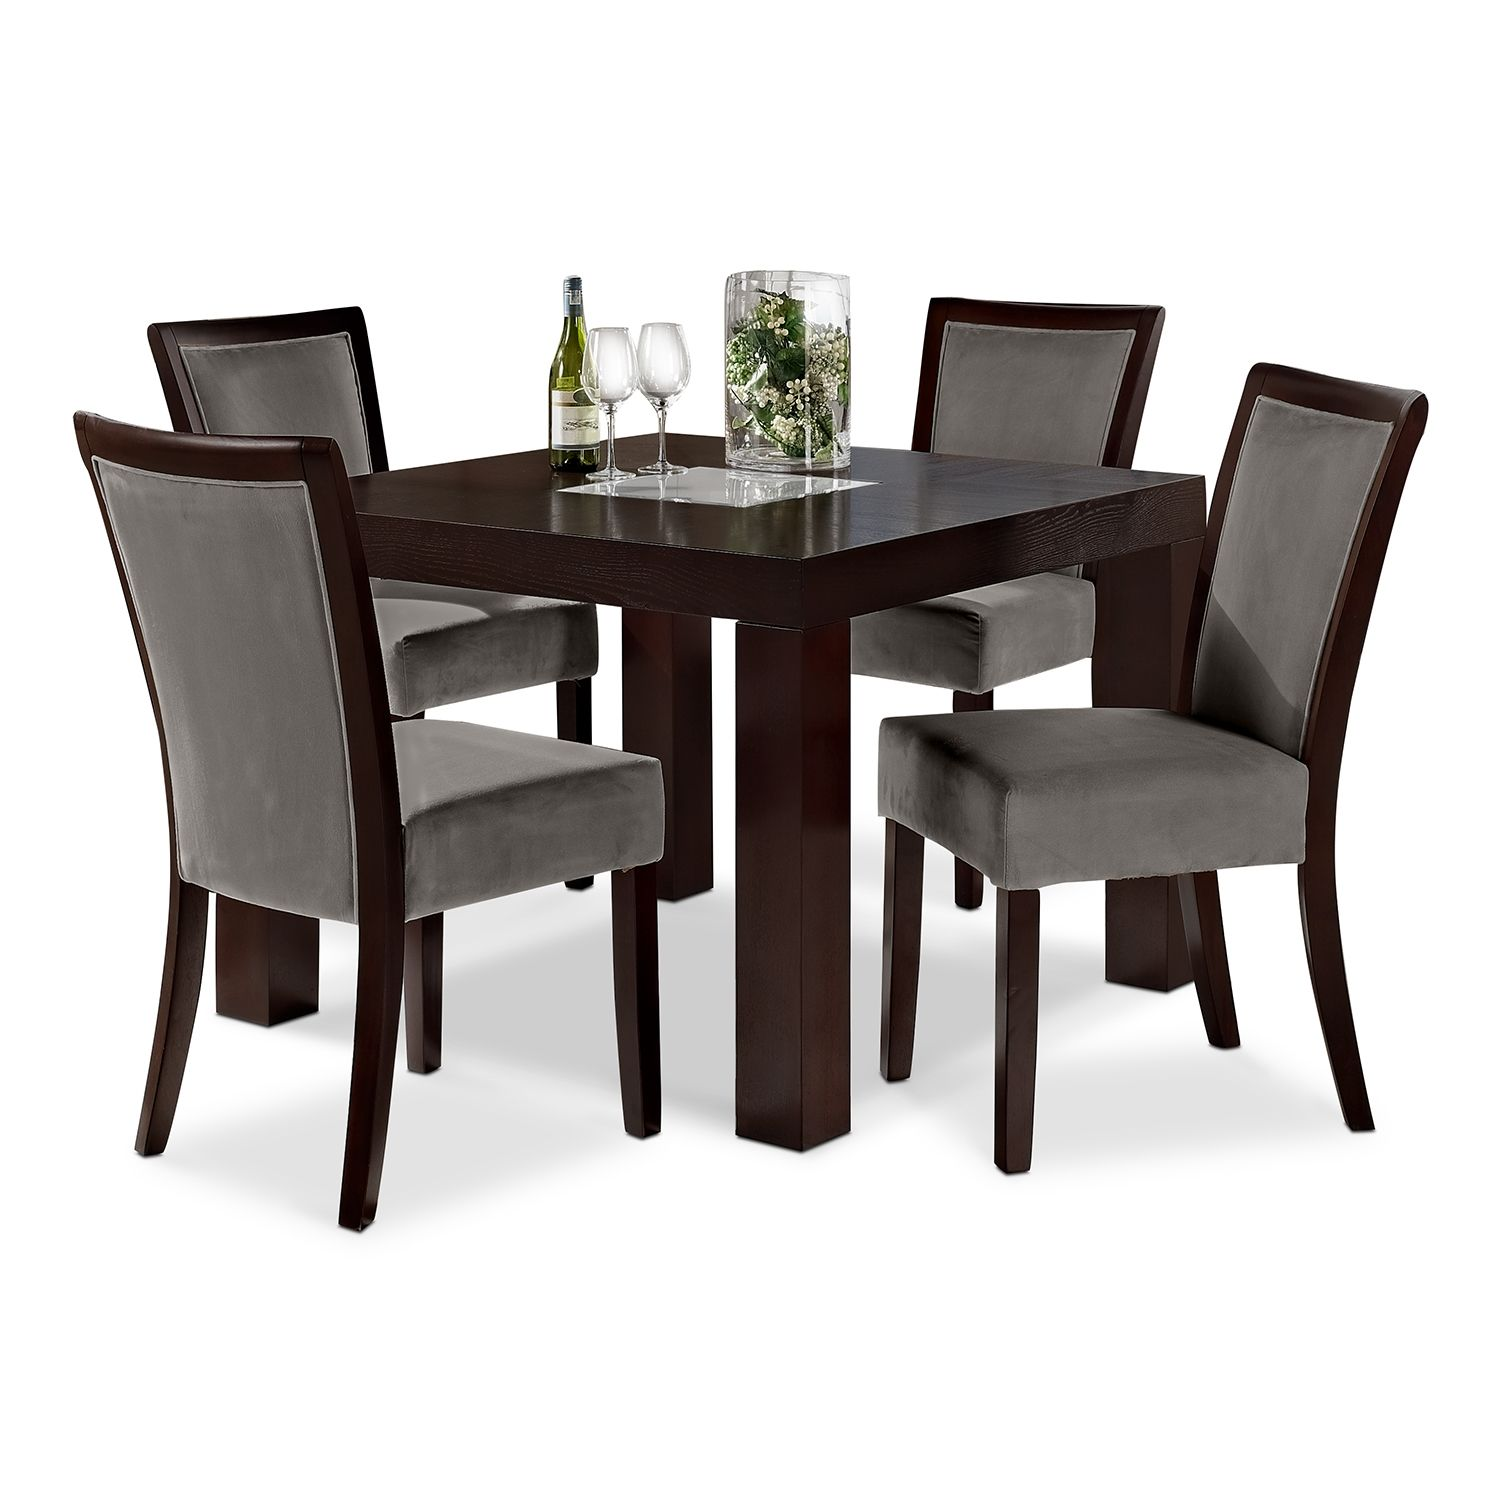 "Tango Gray 5 Pcdinette 42"" Table  Value City Furniture Amazing Value City Kitchen Sets Design Inspiration"